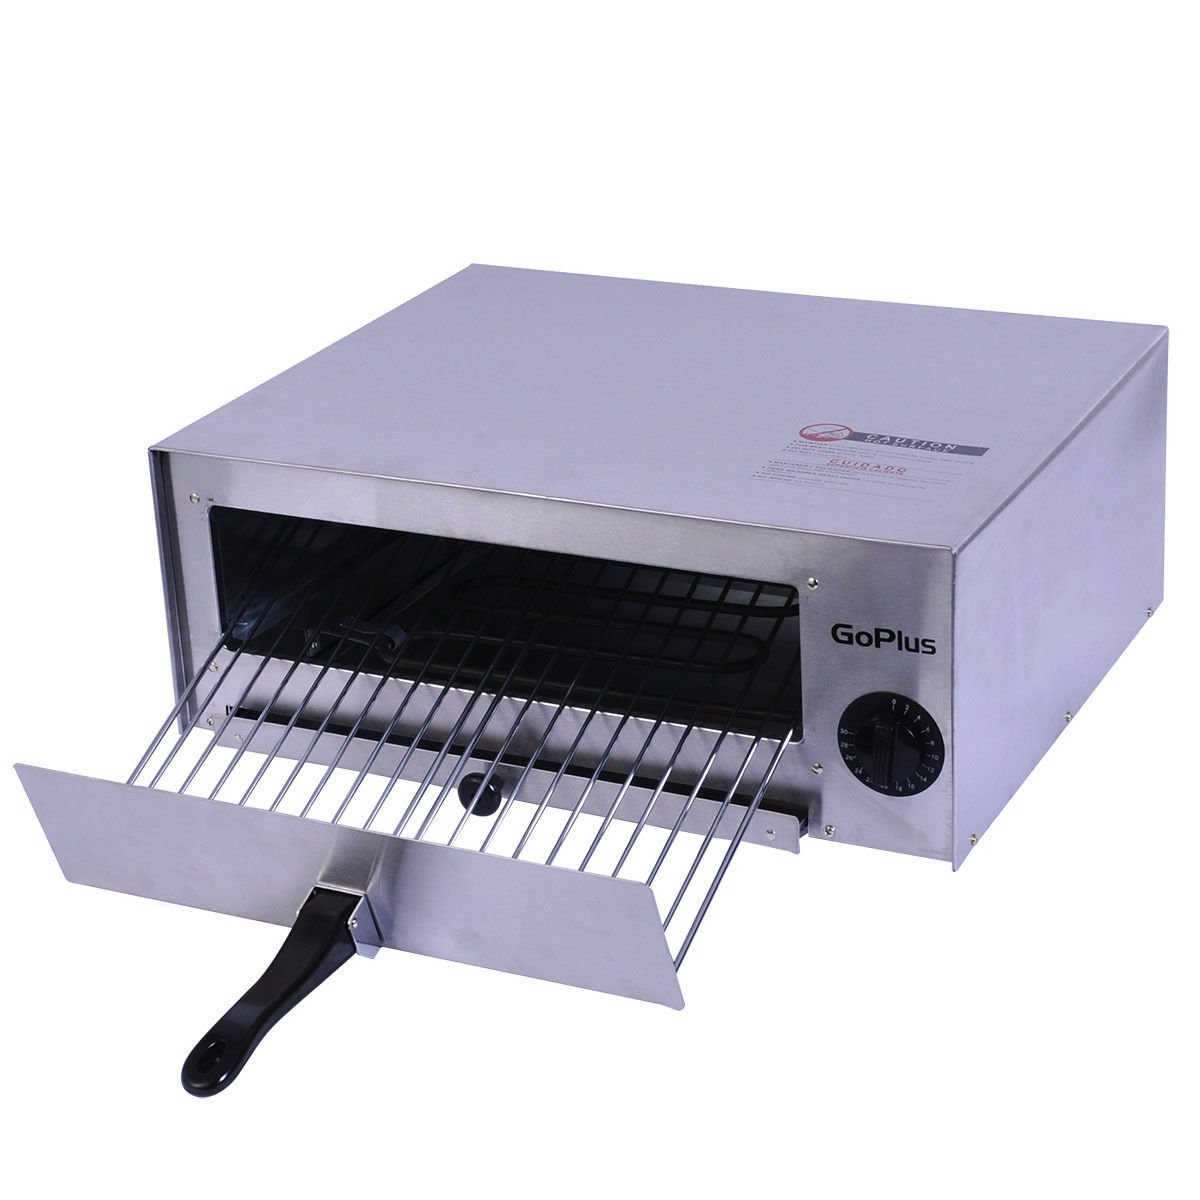 Electric Restaurant Kitchen Countertop 12'' Pizza Baking Oven Stainless Steel Cheese Breads Pretzels Baking Pan w/ Wire Baking Rack Temperature Control Timer